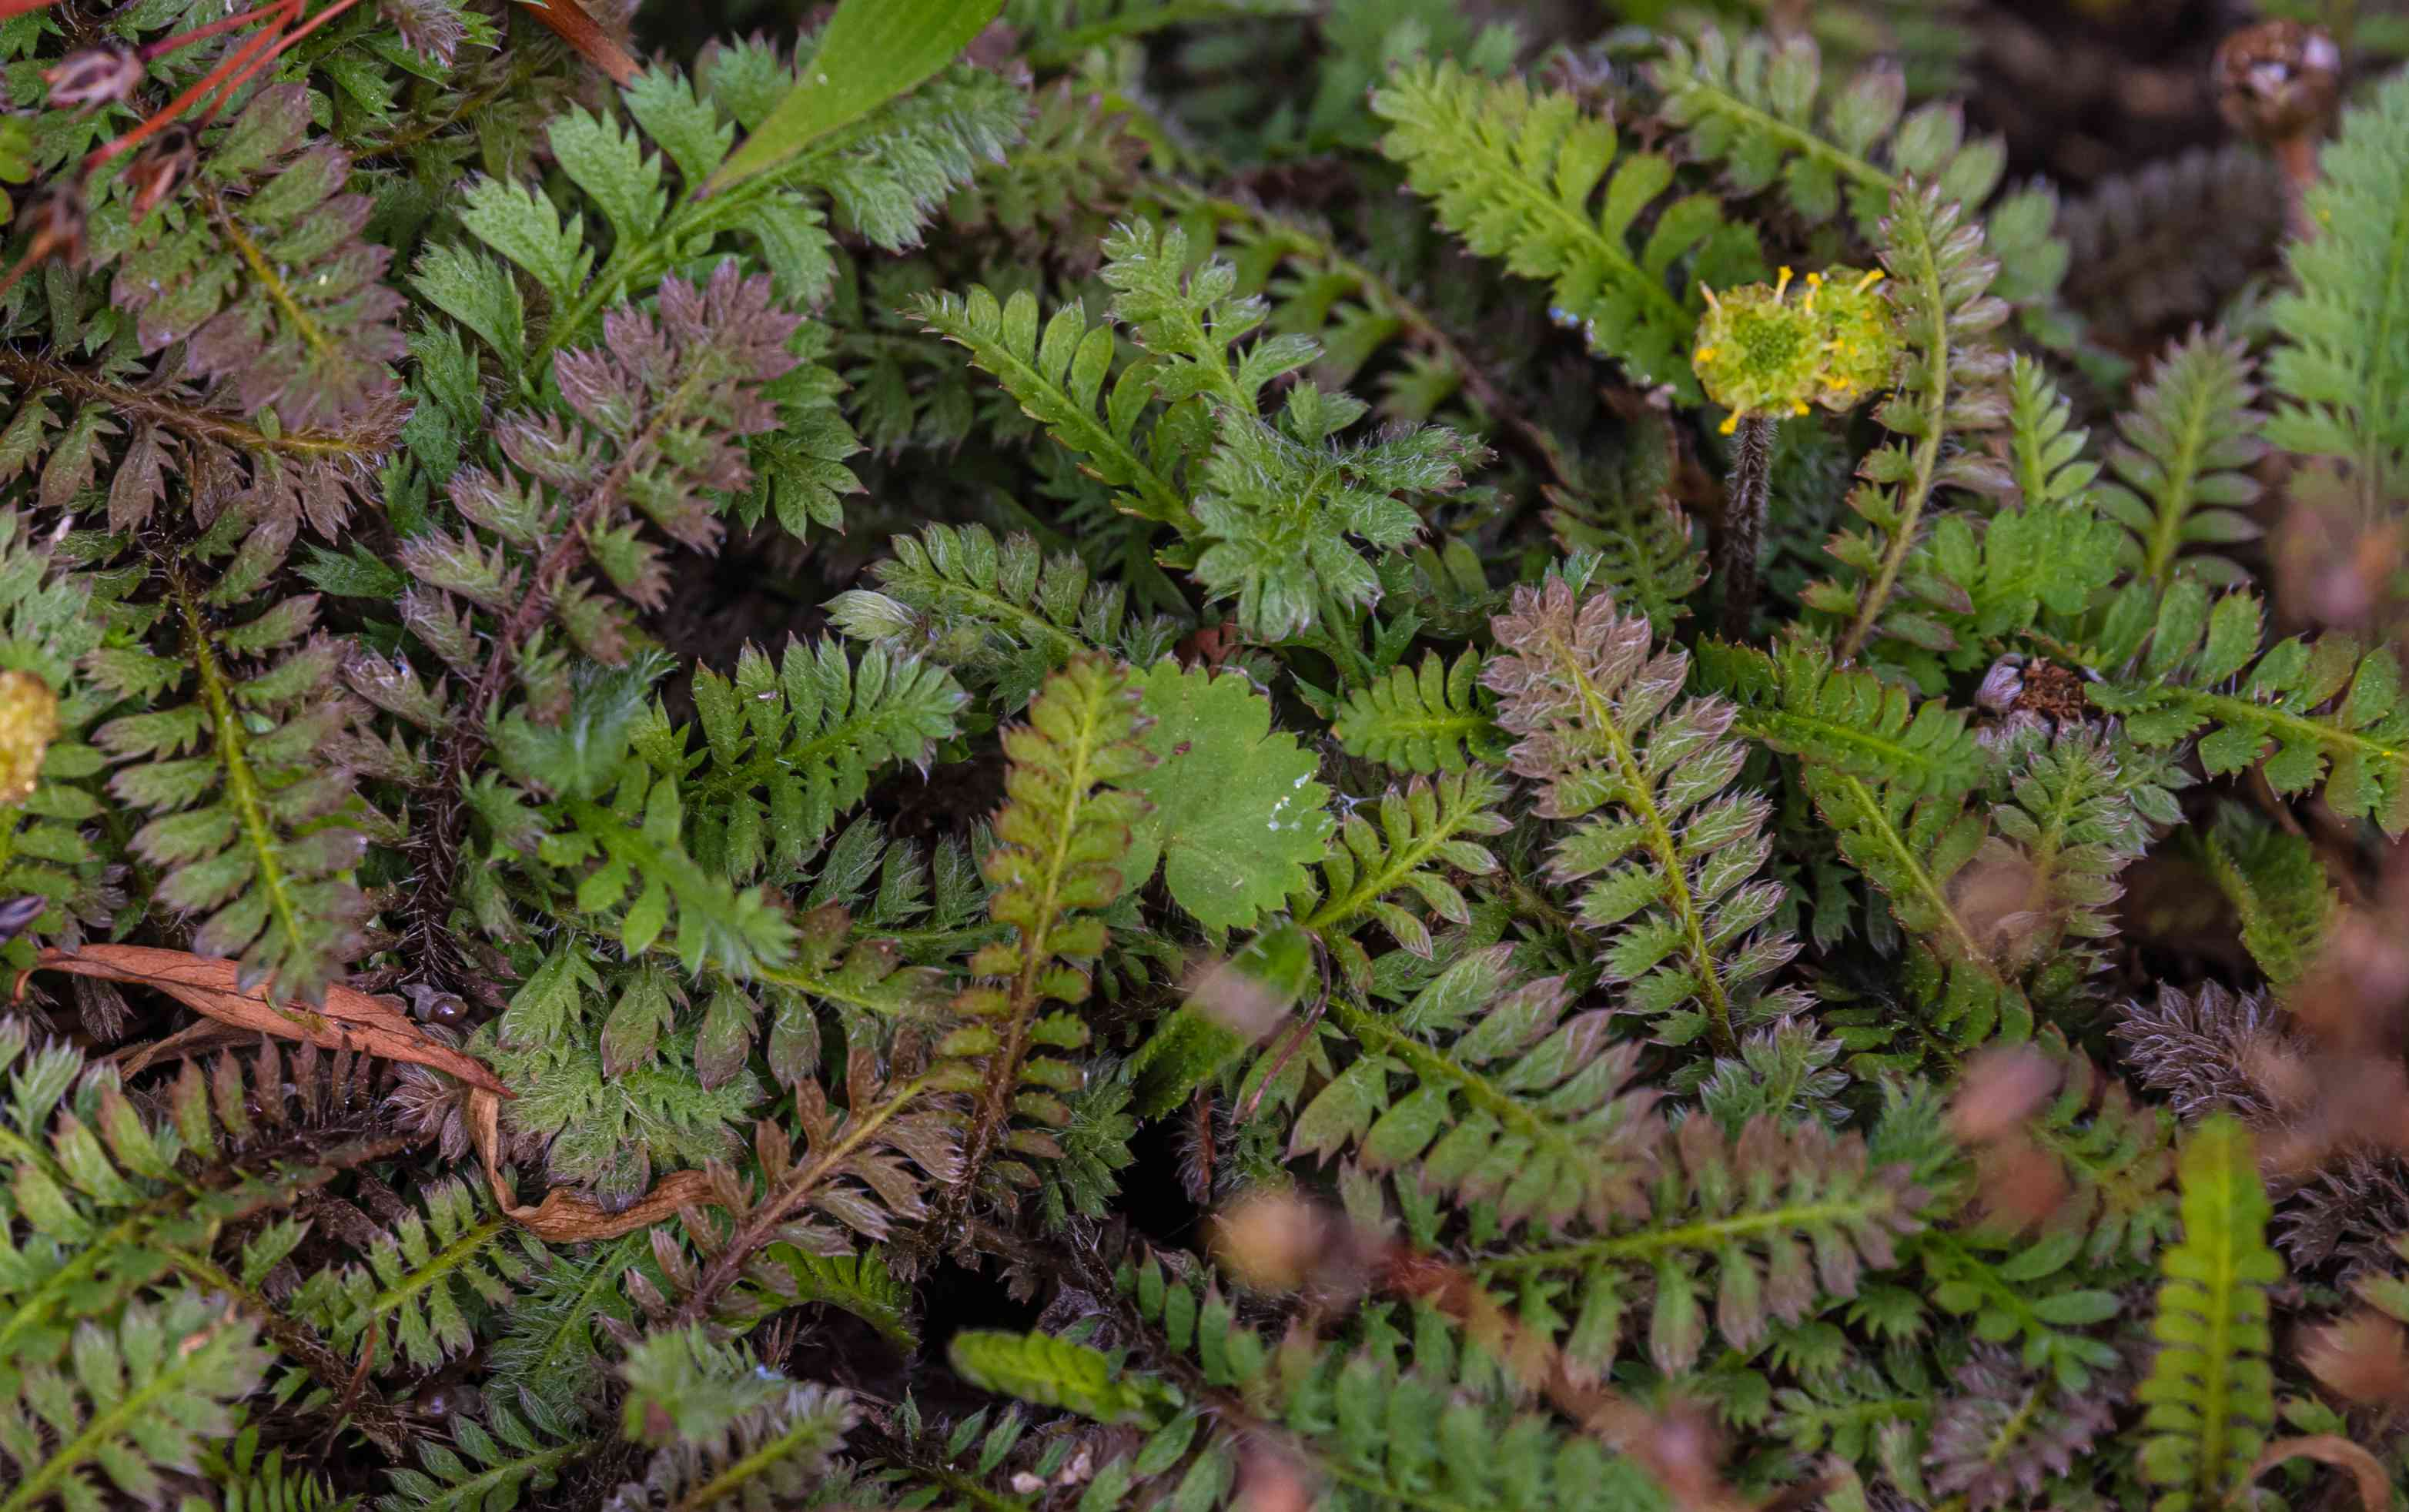 Brass button plants with green fern-like foliage with purple tips closeup